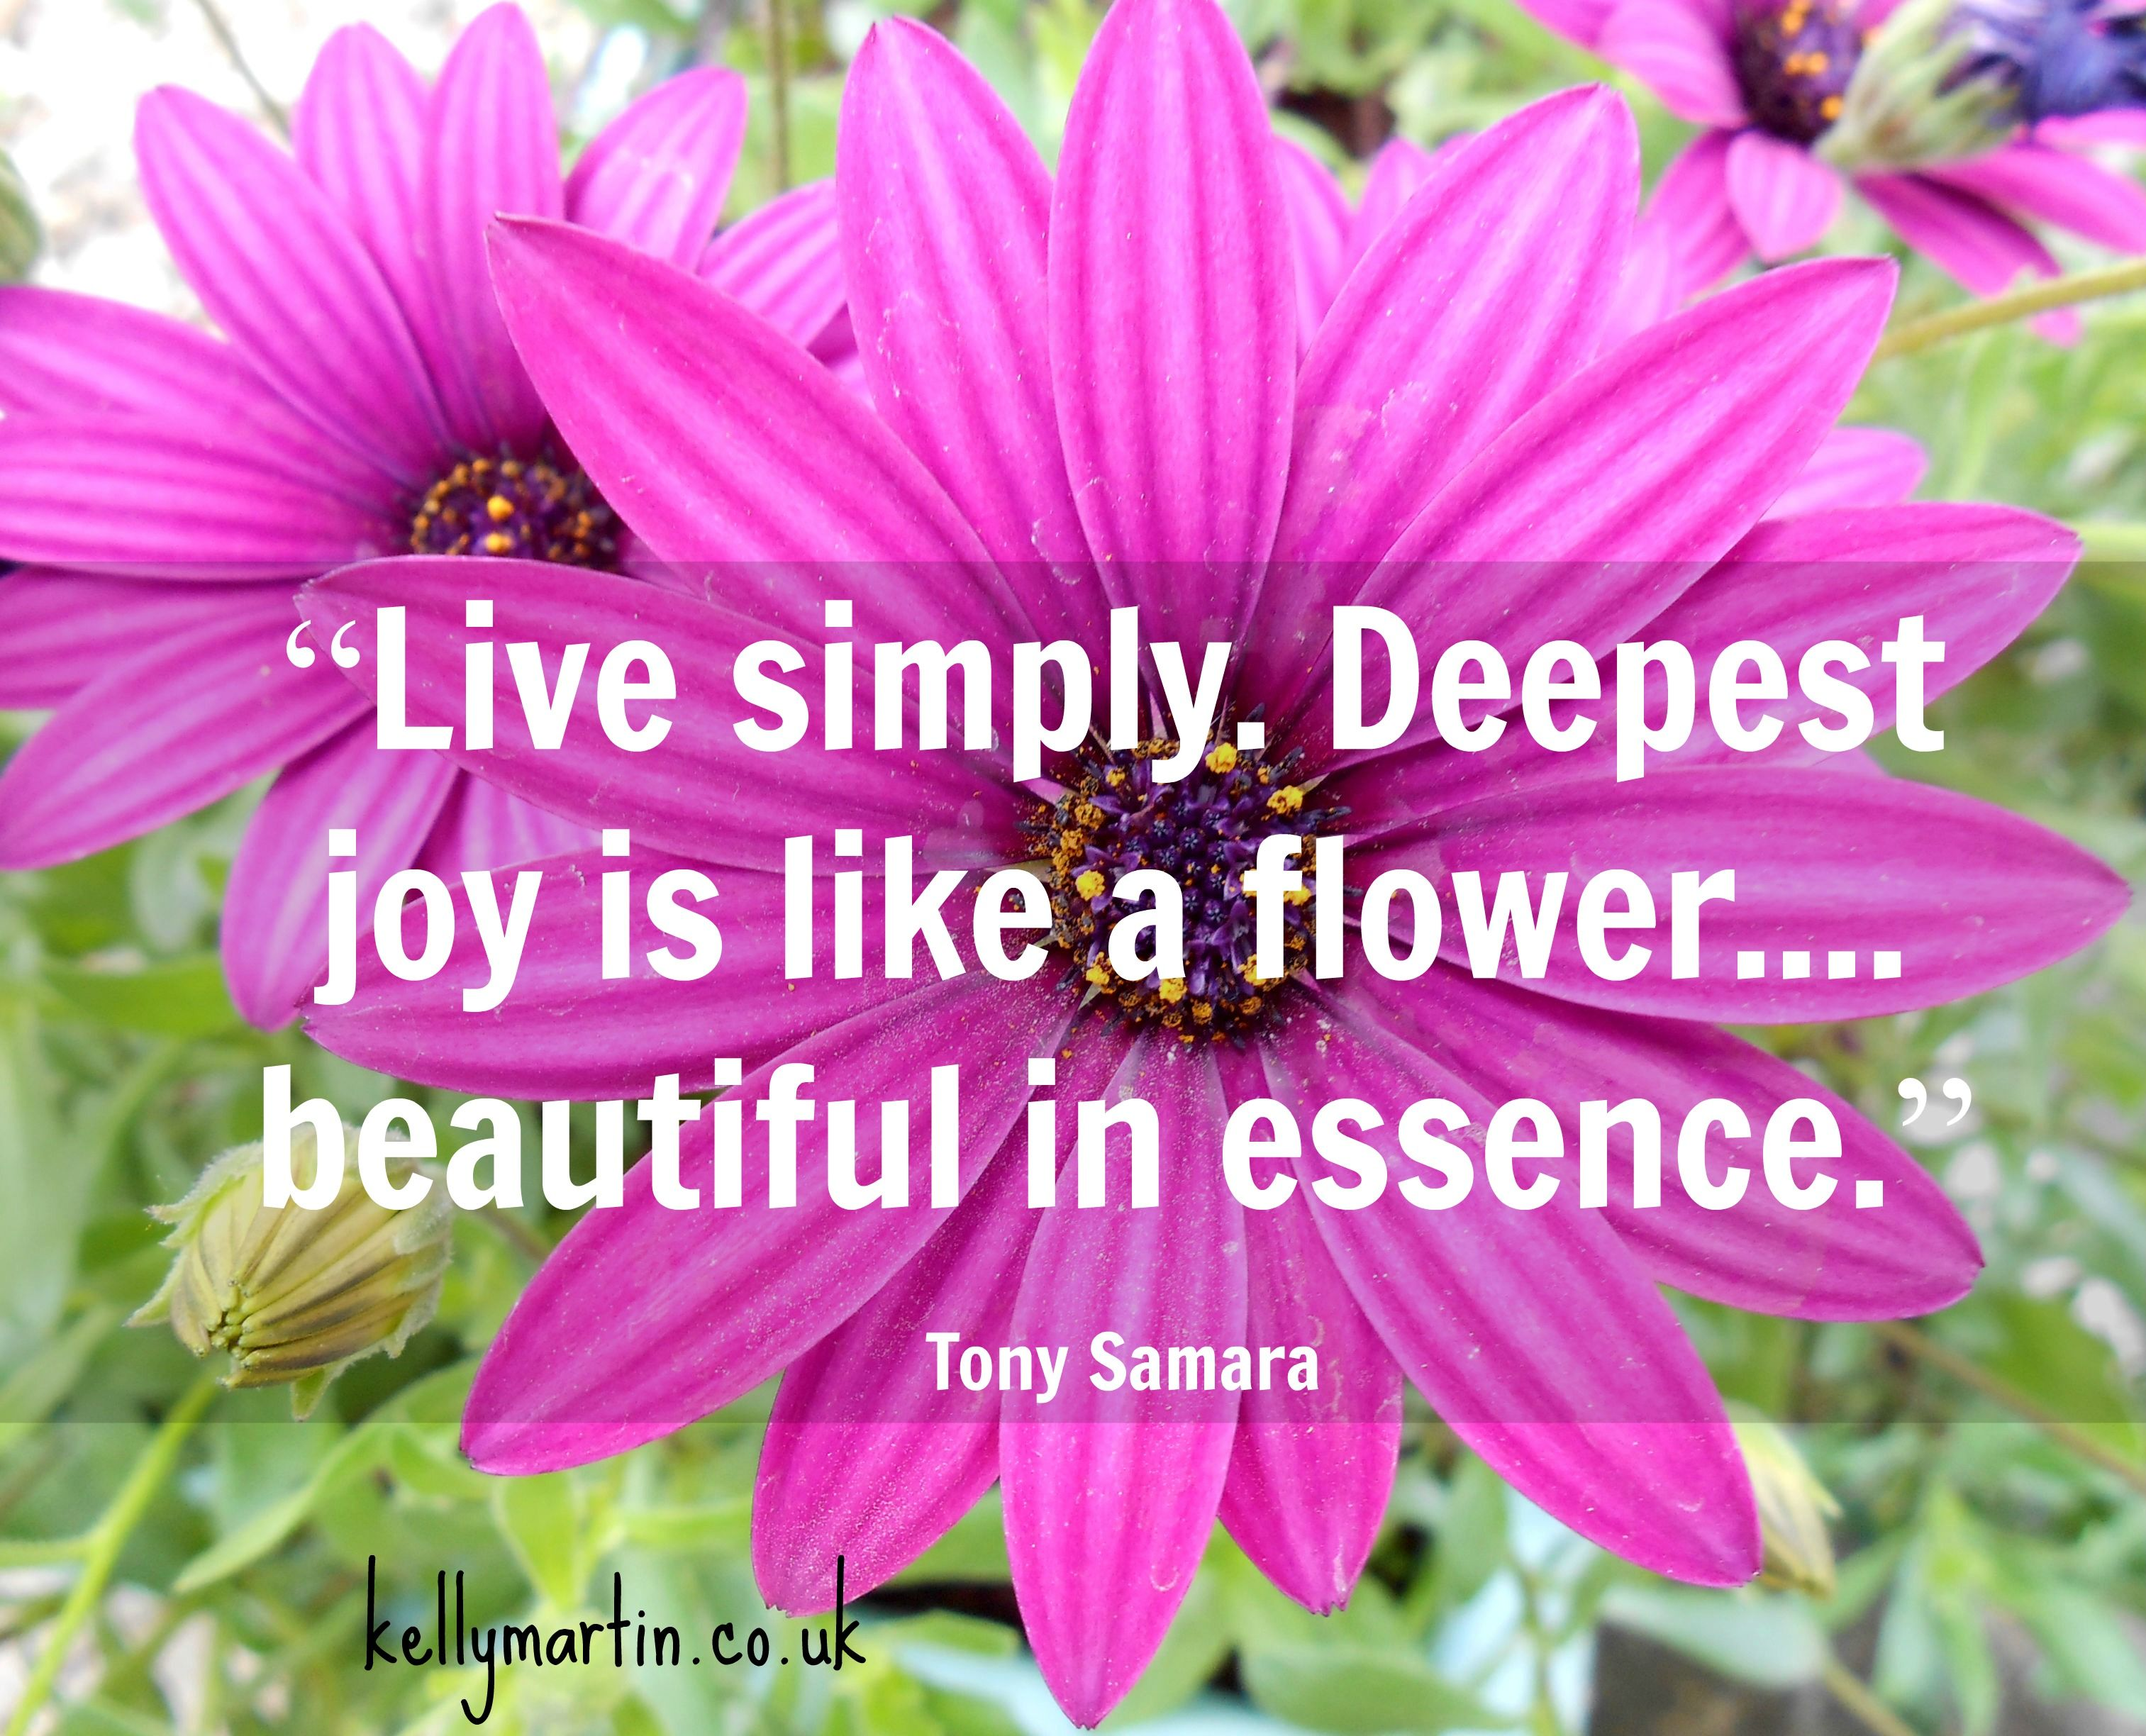 Live Simply Deepest Joy Is Like A Flowerautiful In Essence